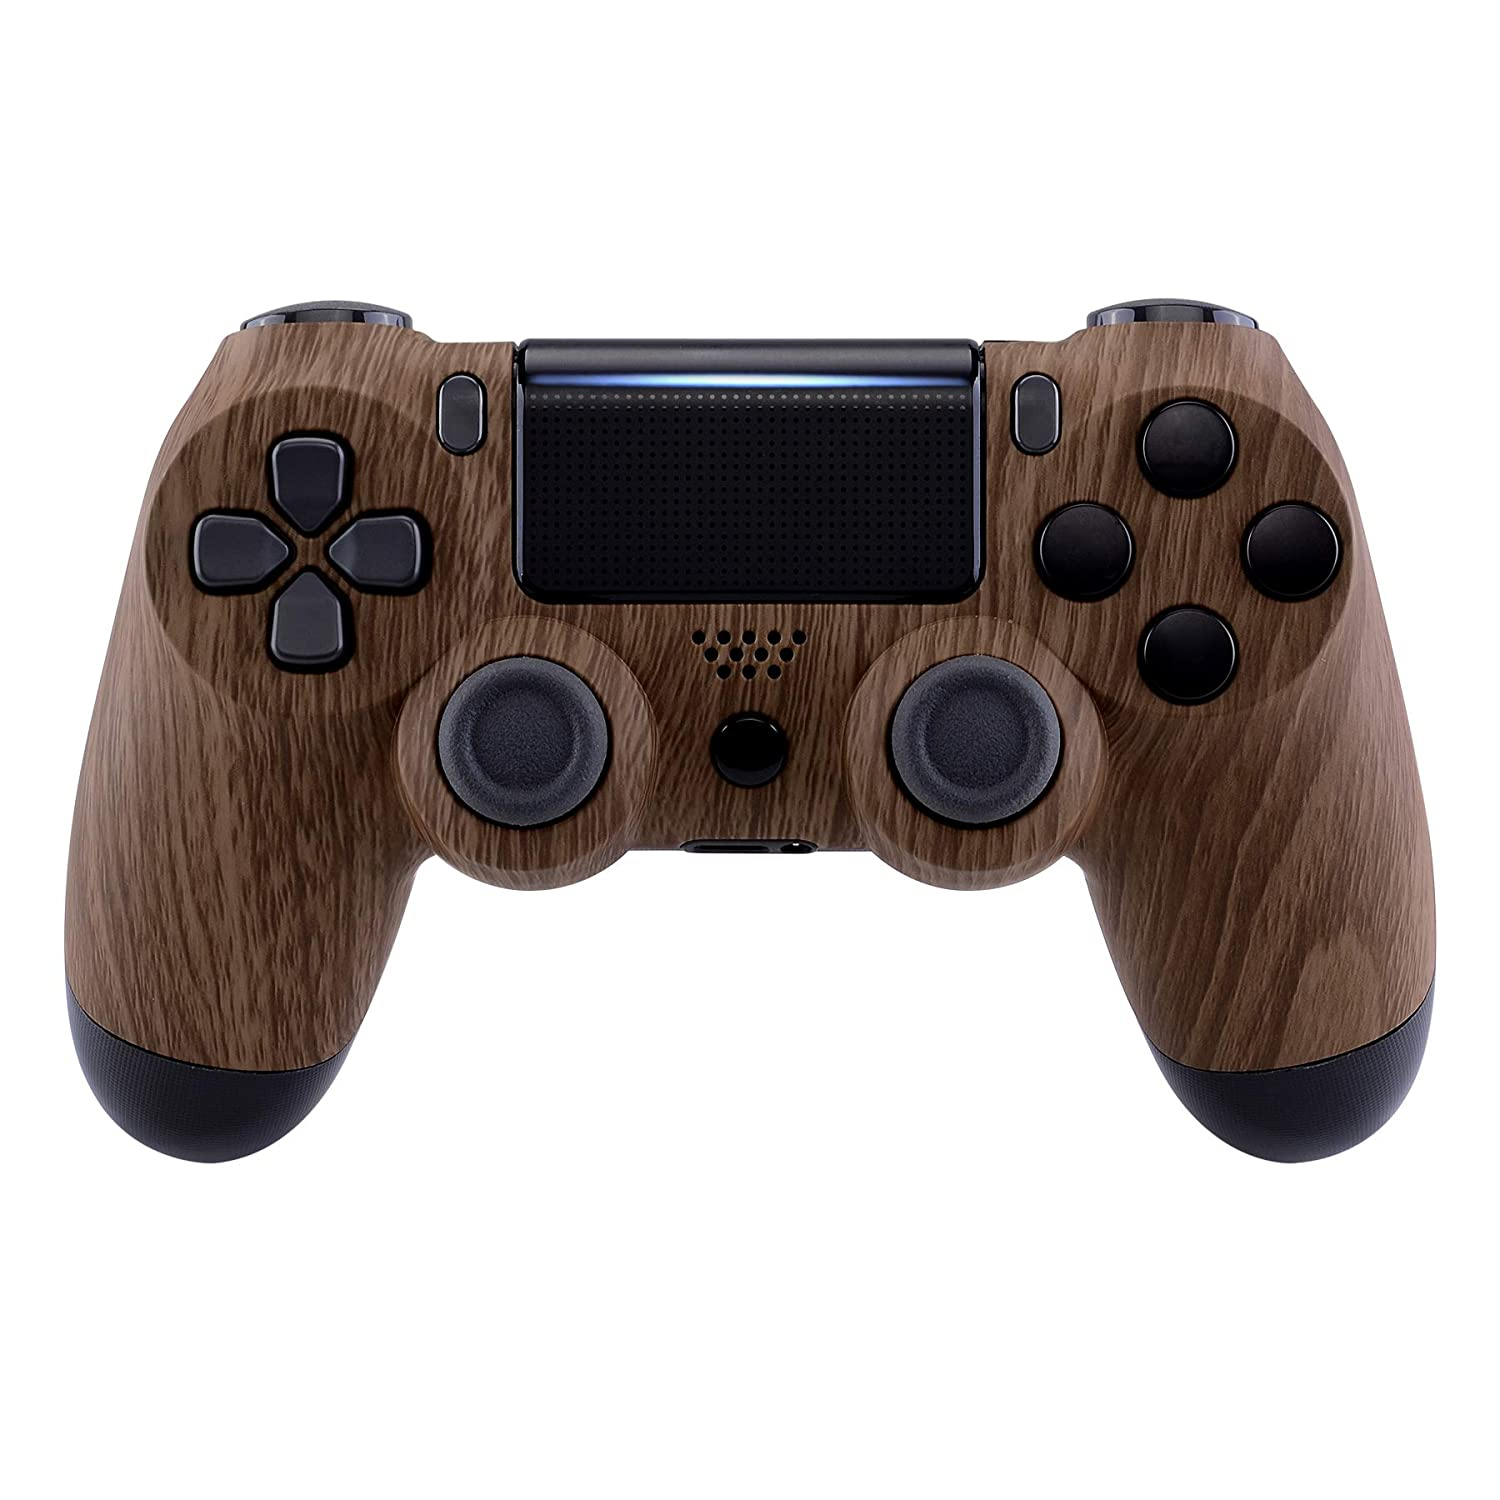 eXtremeRate Brown Wood Grain Pattern San Jose Mall Touch Be super welcome Cover Soft Faceplate